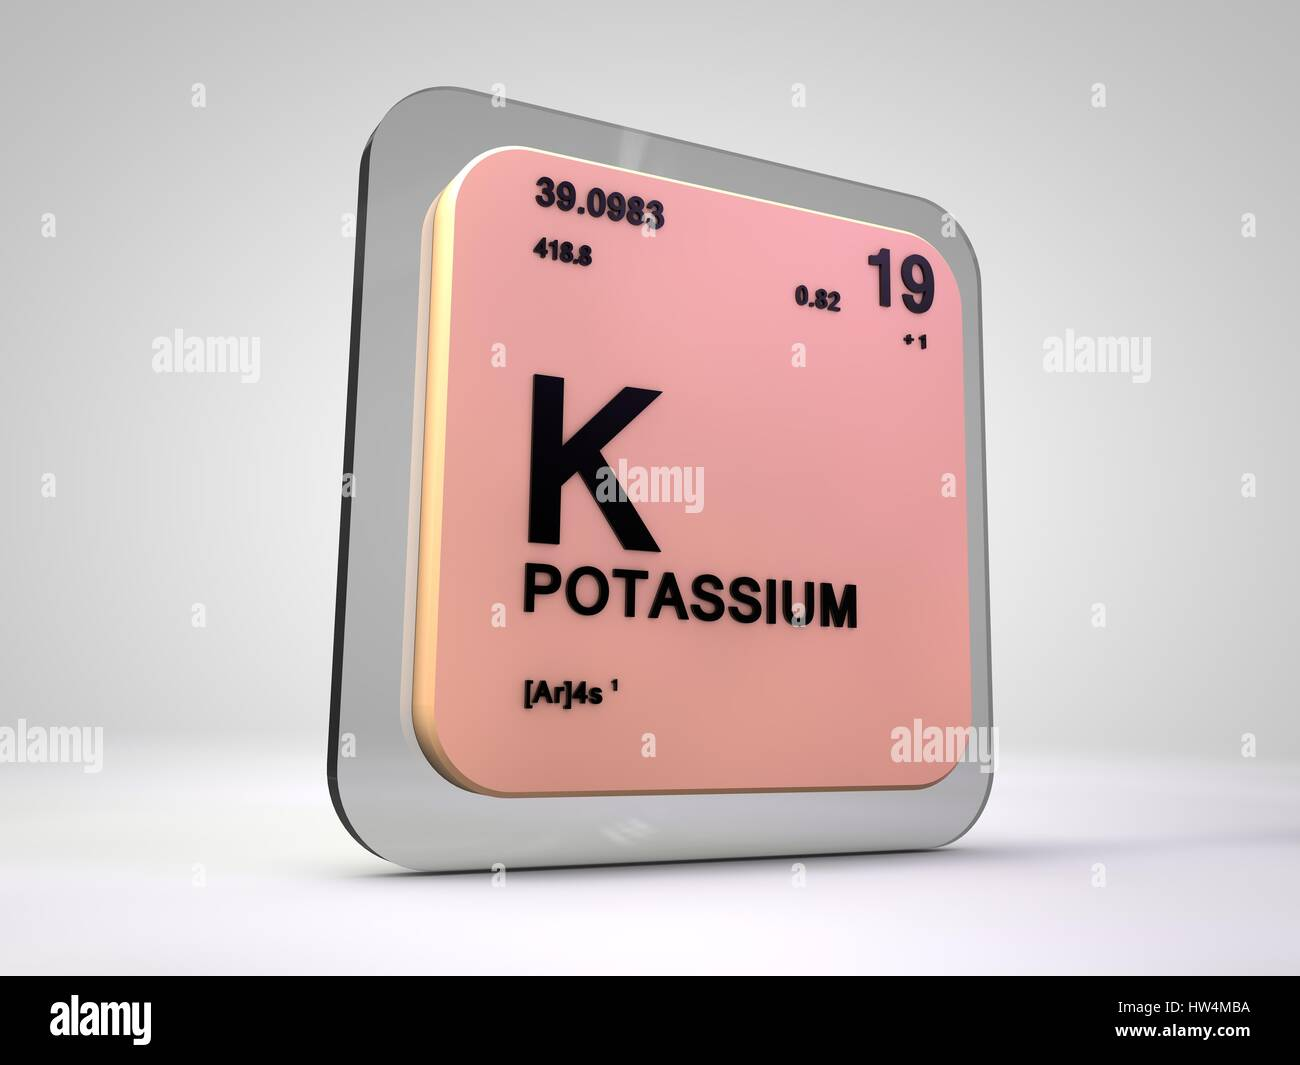 Potassium k chemical element periodic table 3d render stock potassium k chemical element periodic table 3d render buycottarizona